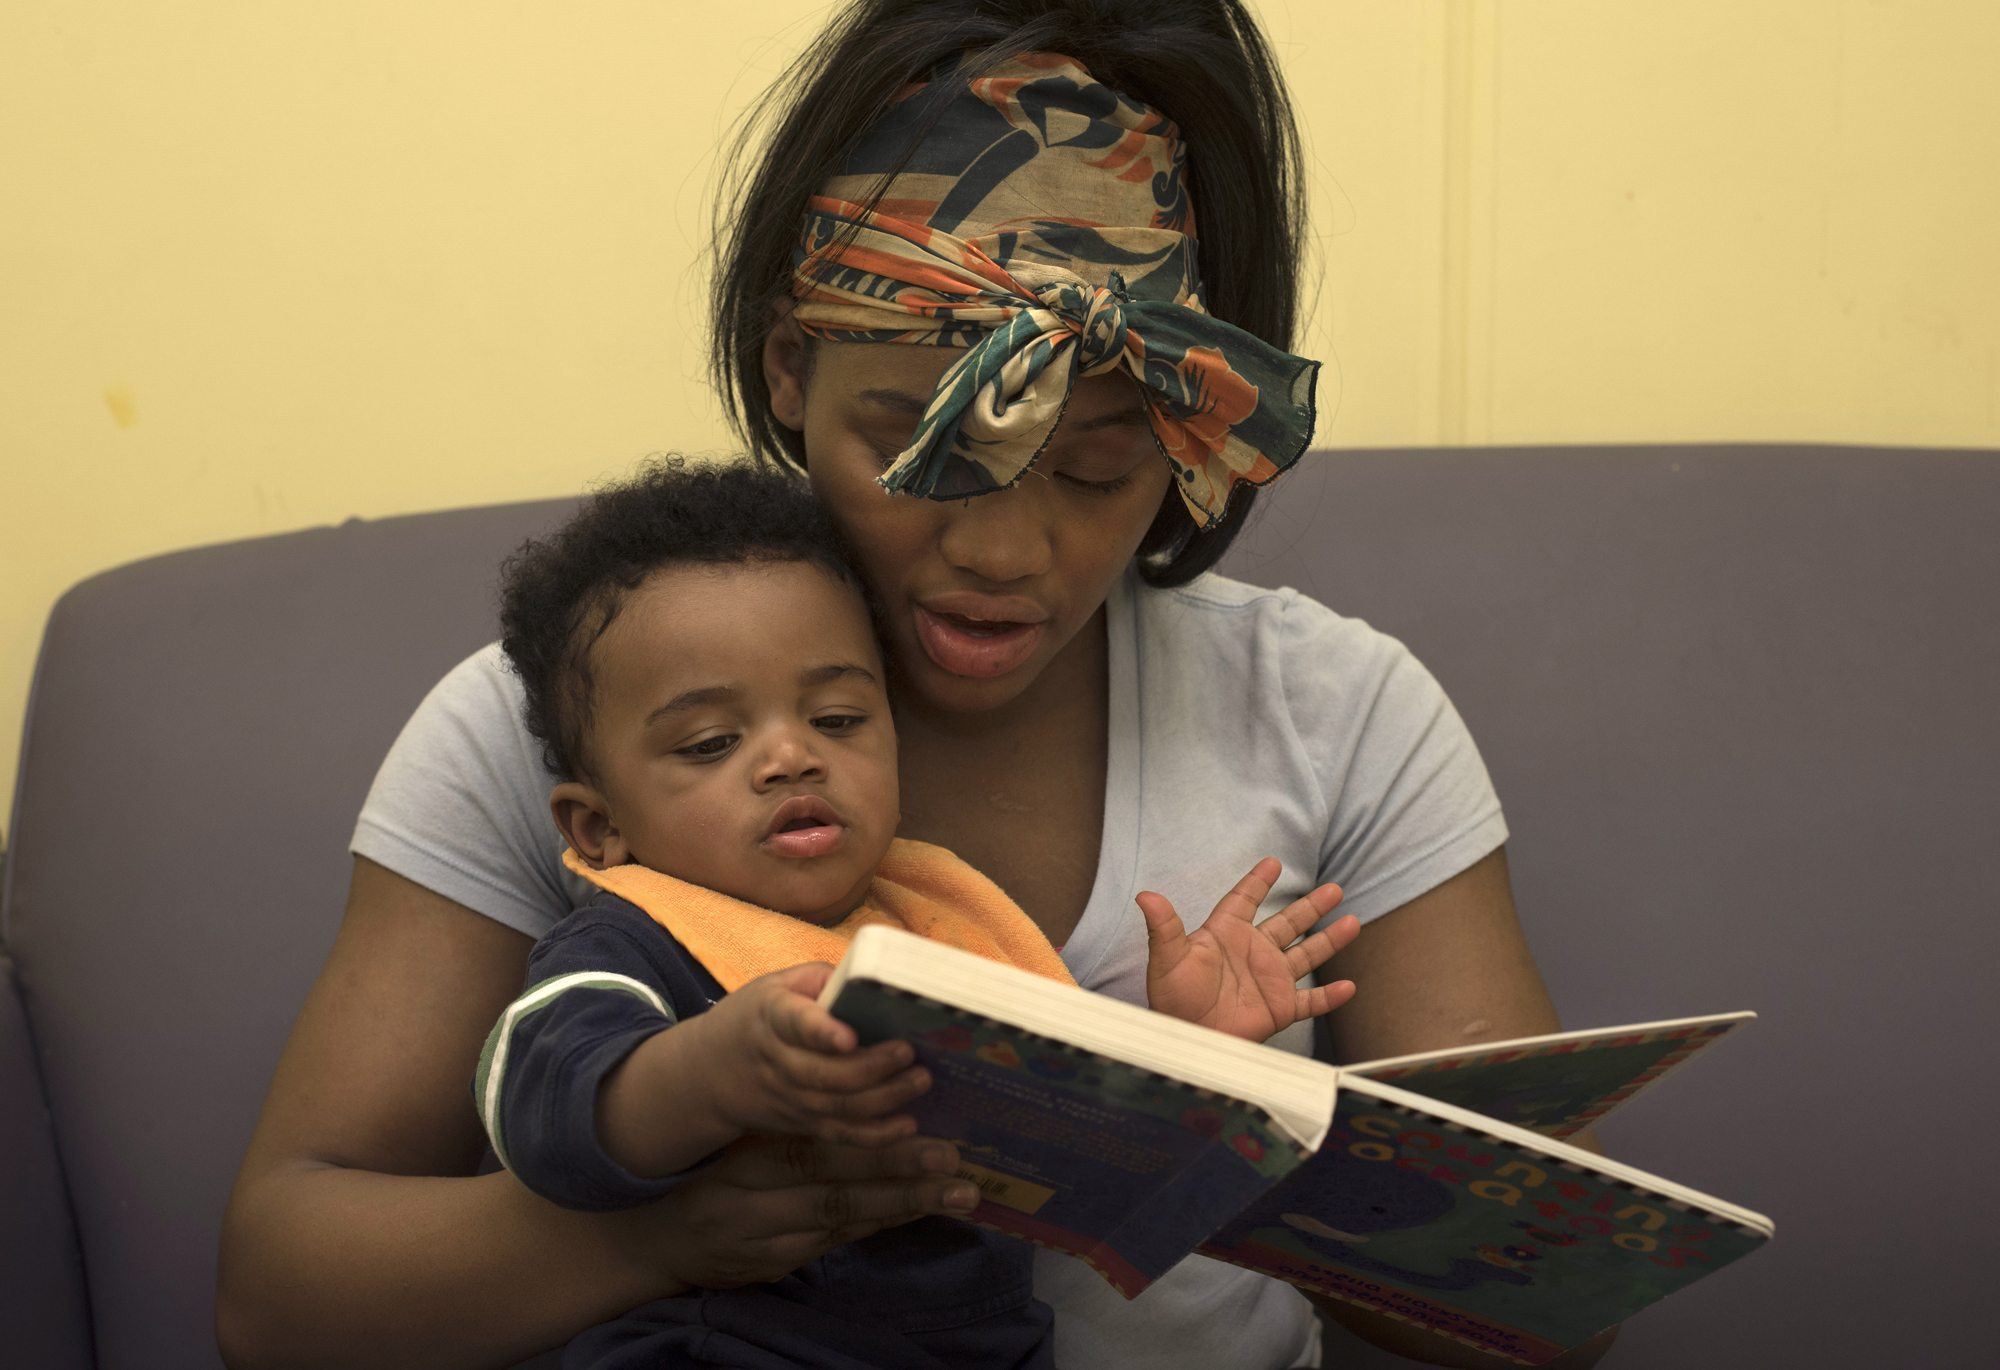 Tyneisha Wilder, 18, reads to her son Tayden, age 8 months, during a supervised visit at CYF Lexington office in Point Breeze. Tayden was four days old when he was taken from Tyneisha and put into foster care. (Photo by Martha Rial/PublicSource)